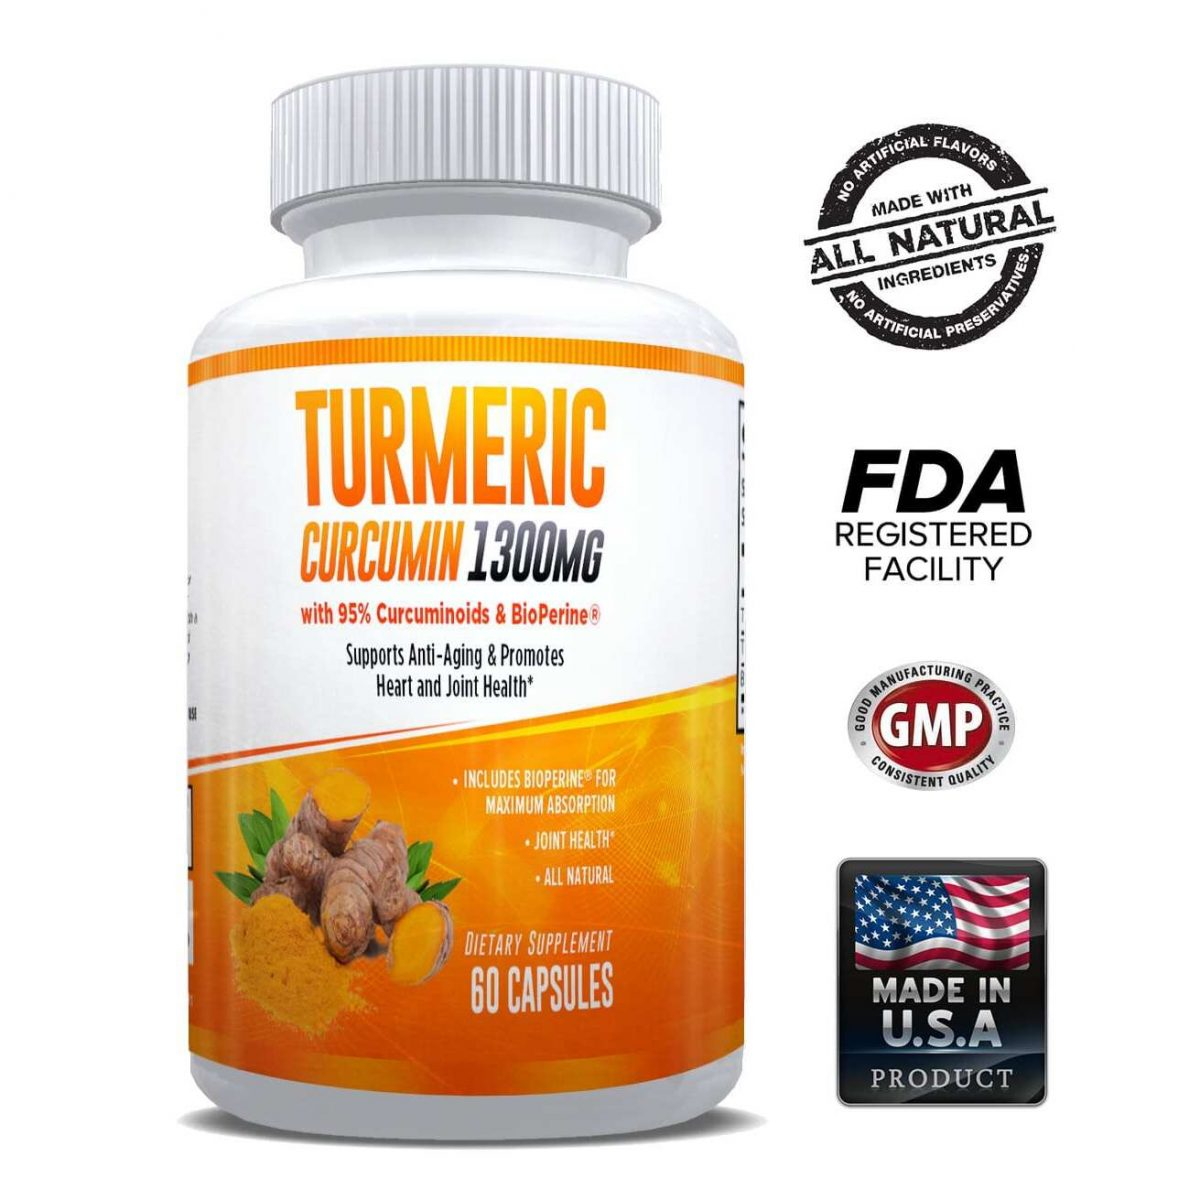 Natural Turmeric Curcumin (95%) 1300mg Supplement - 60 Capsules-0